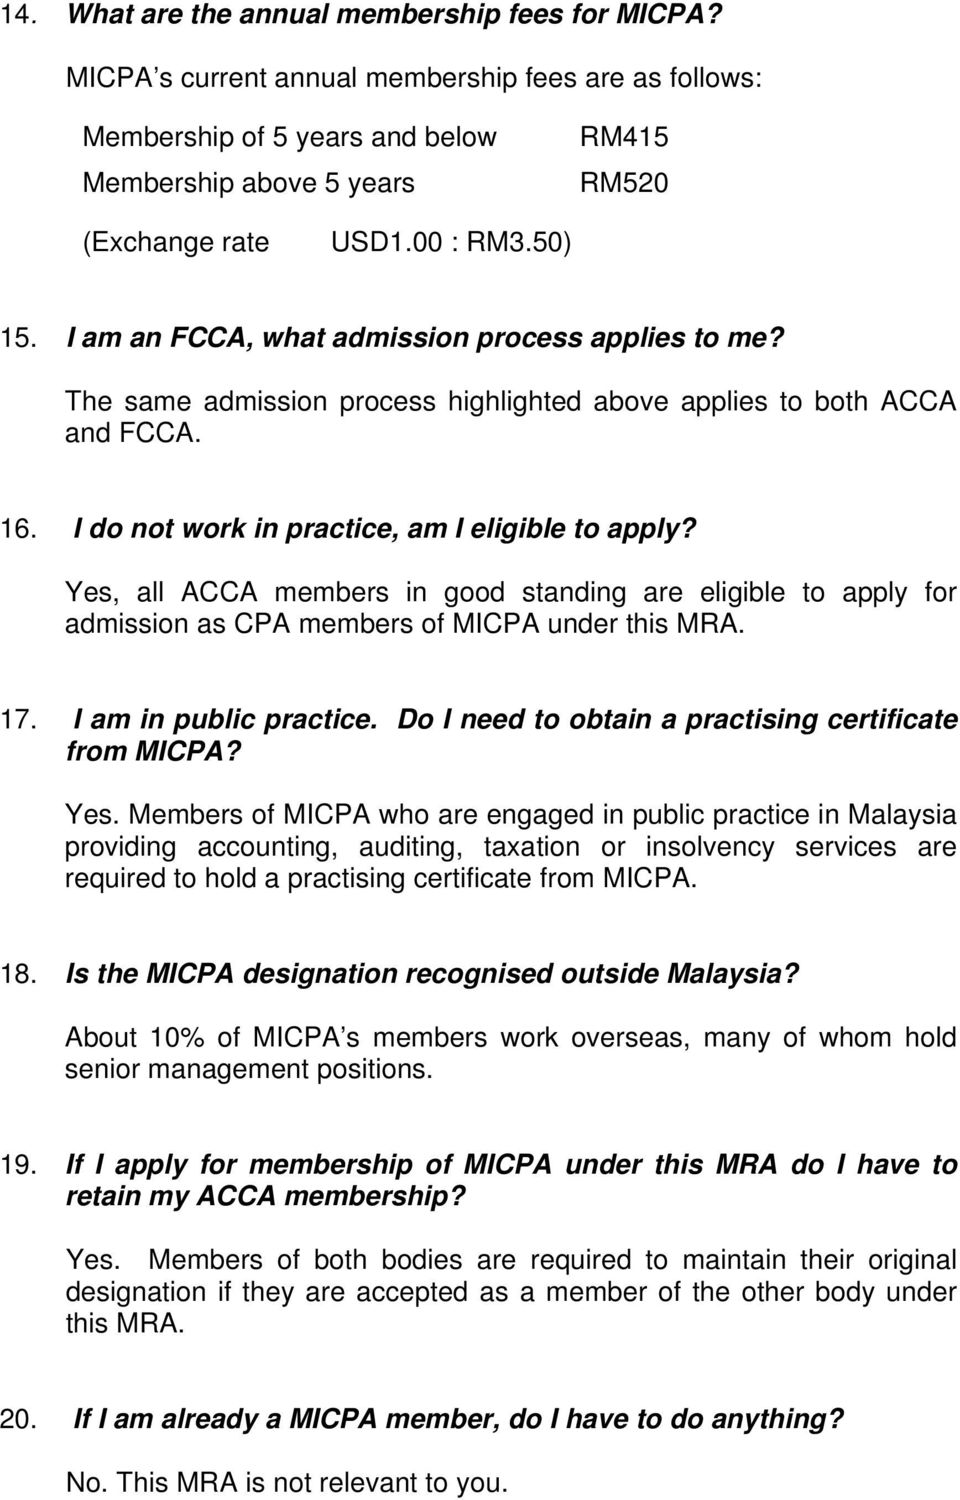 Yes, all ACCA members in good standing are eligible to apply for admission as CPA members of MICPA under this MRA. 17. I am in public practice. Do I need to obtain a practising certificate from MICPA?